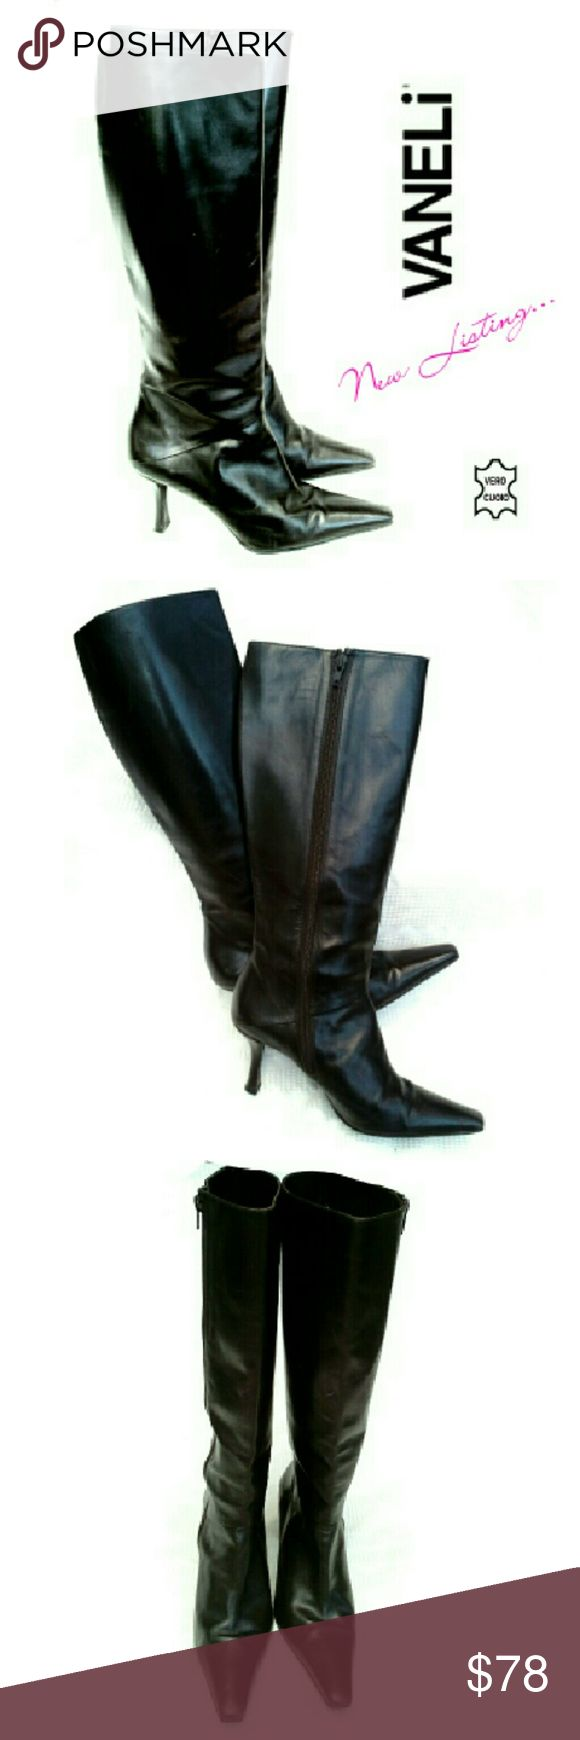 """VANELI VERO CUOIO BLACK #2 ITALY MADE BOOTS VANELI MADE IN ITALY GENUINE LEATHER BOOTS #2 Pre-loved / VERO CUOIO (Genuine Leather) *   These R Like The Other Pair ( except no Expansions in Calves)) *   Black Genuine Leather *   3"""" Stiletto Heels *   In Step Zippers *   Total Ht 17"""" Approx Calve Meas; 6 1/2"""" *   Depending on How U hold it, Scuff on Right      Boot. Can't Really See unless U Look For It Pls See All Pics. Ask ? If Needed Vaneli Shoes Heeled Boots"""